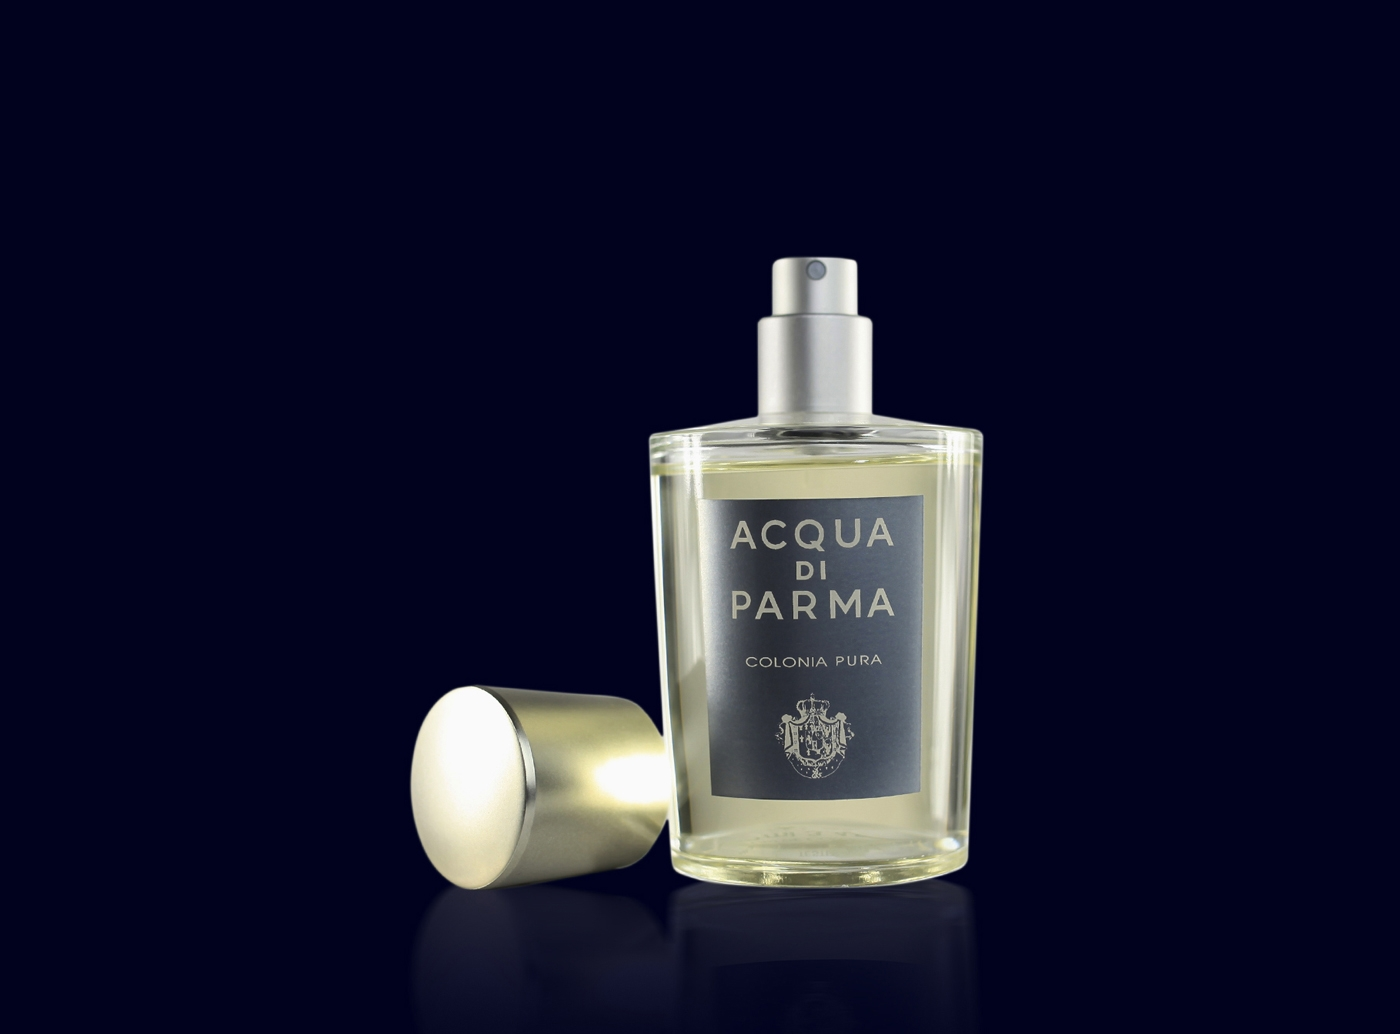 Acqua di Parma pura lead off.jpg